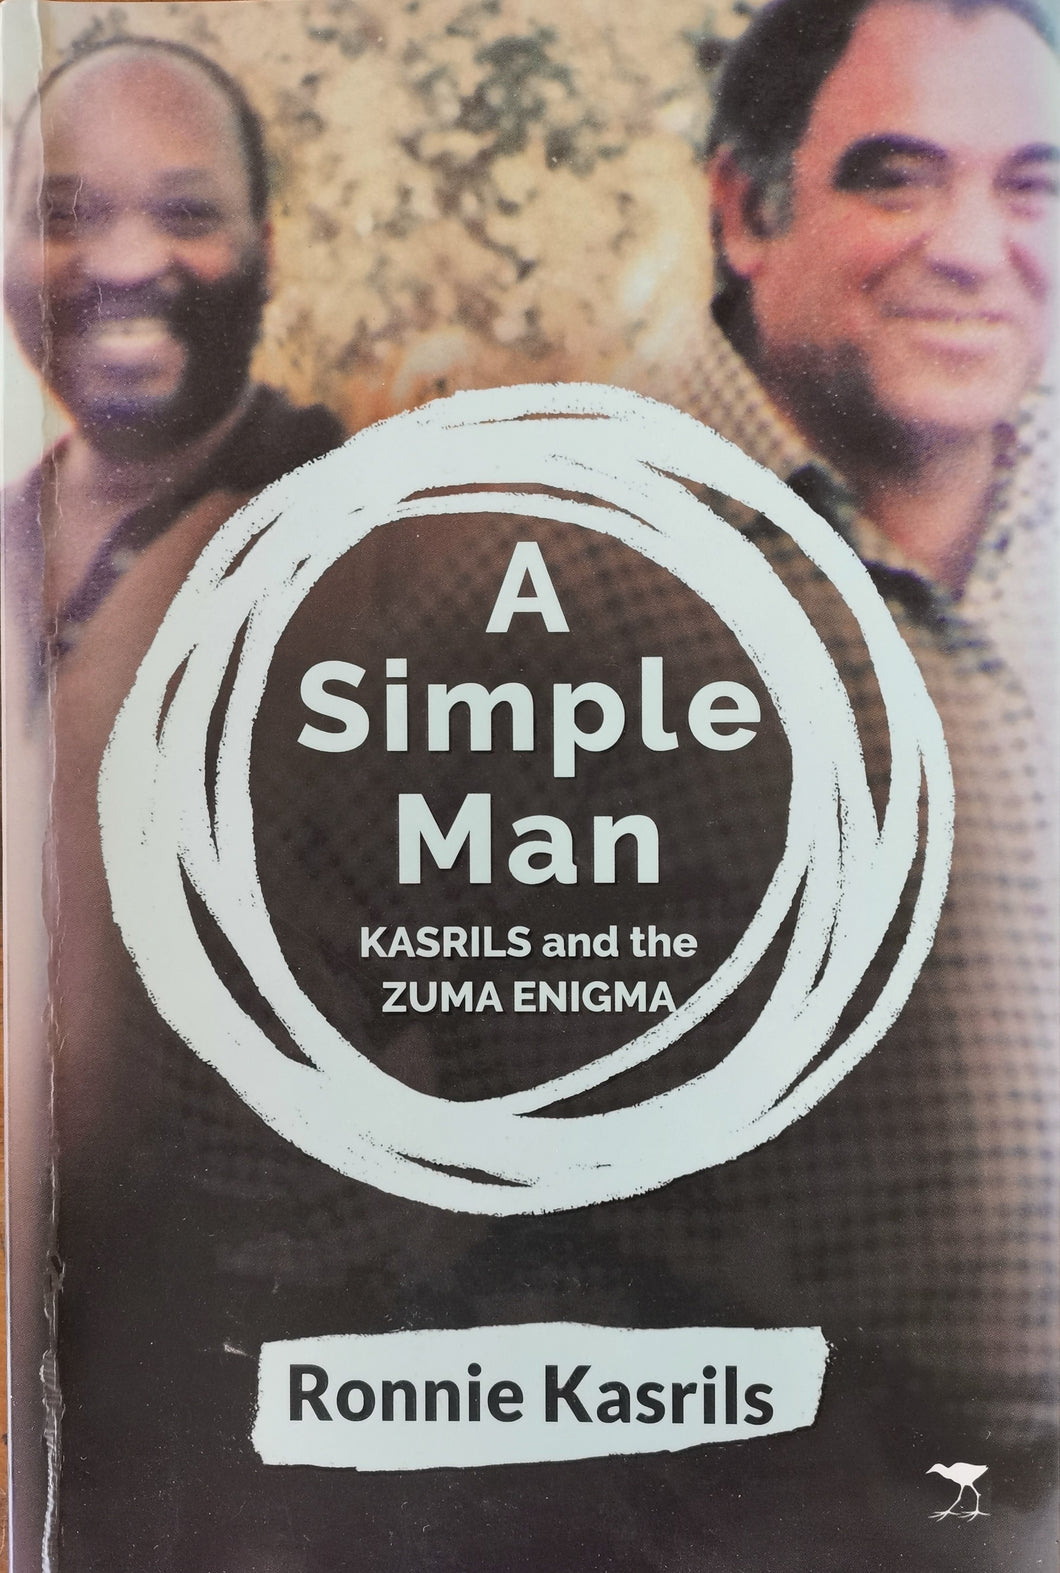 Ronnie Kasrils - A Simple Man: Kasrils and the Zulu Enigma